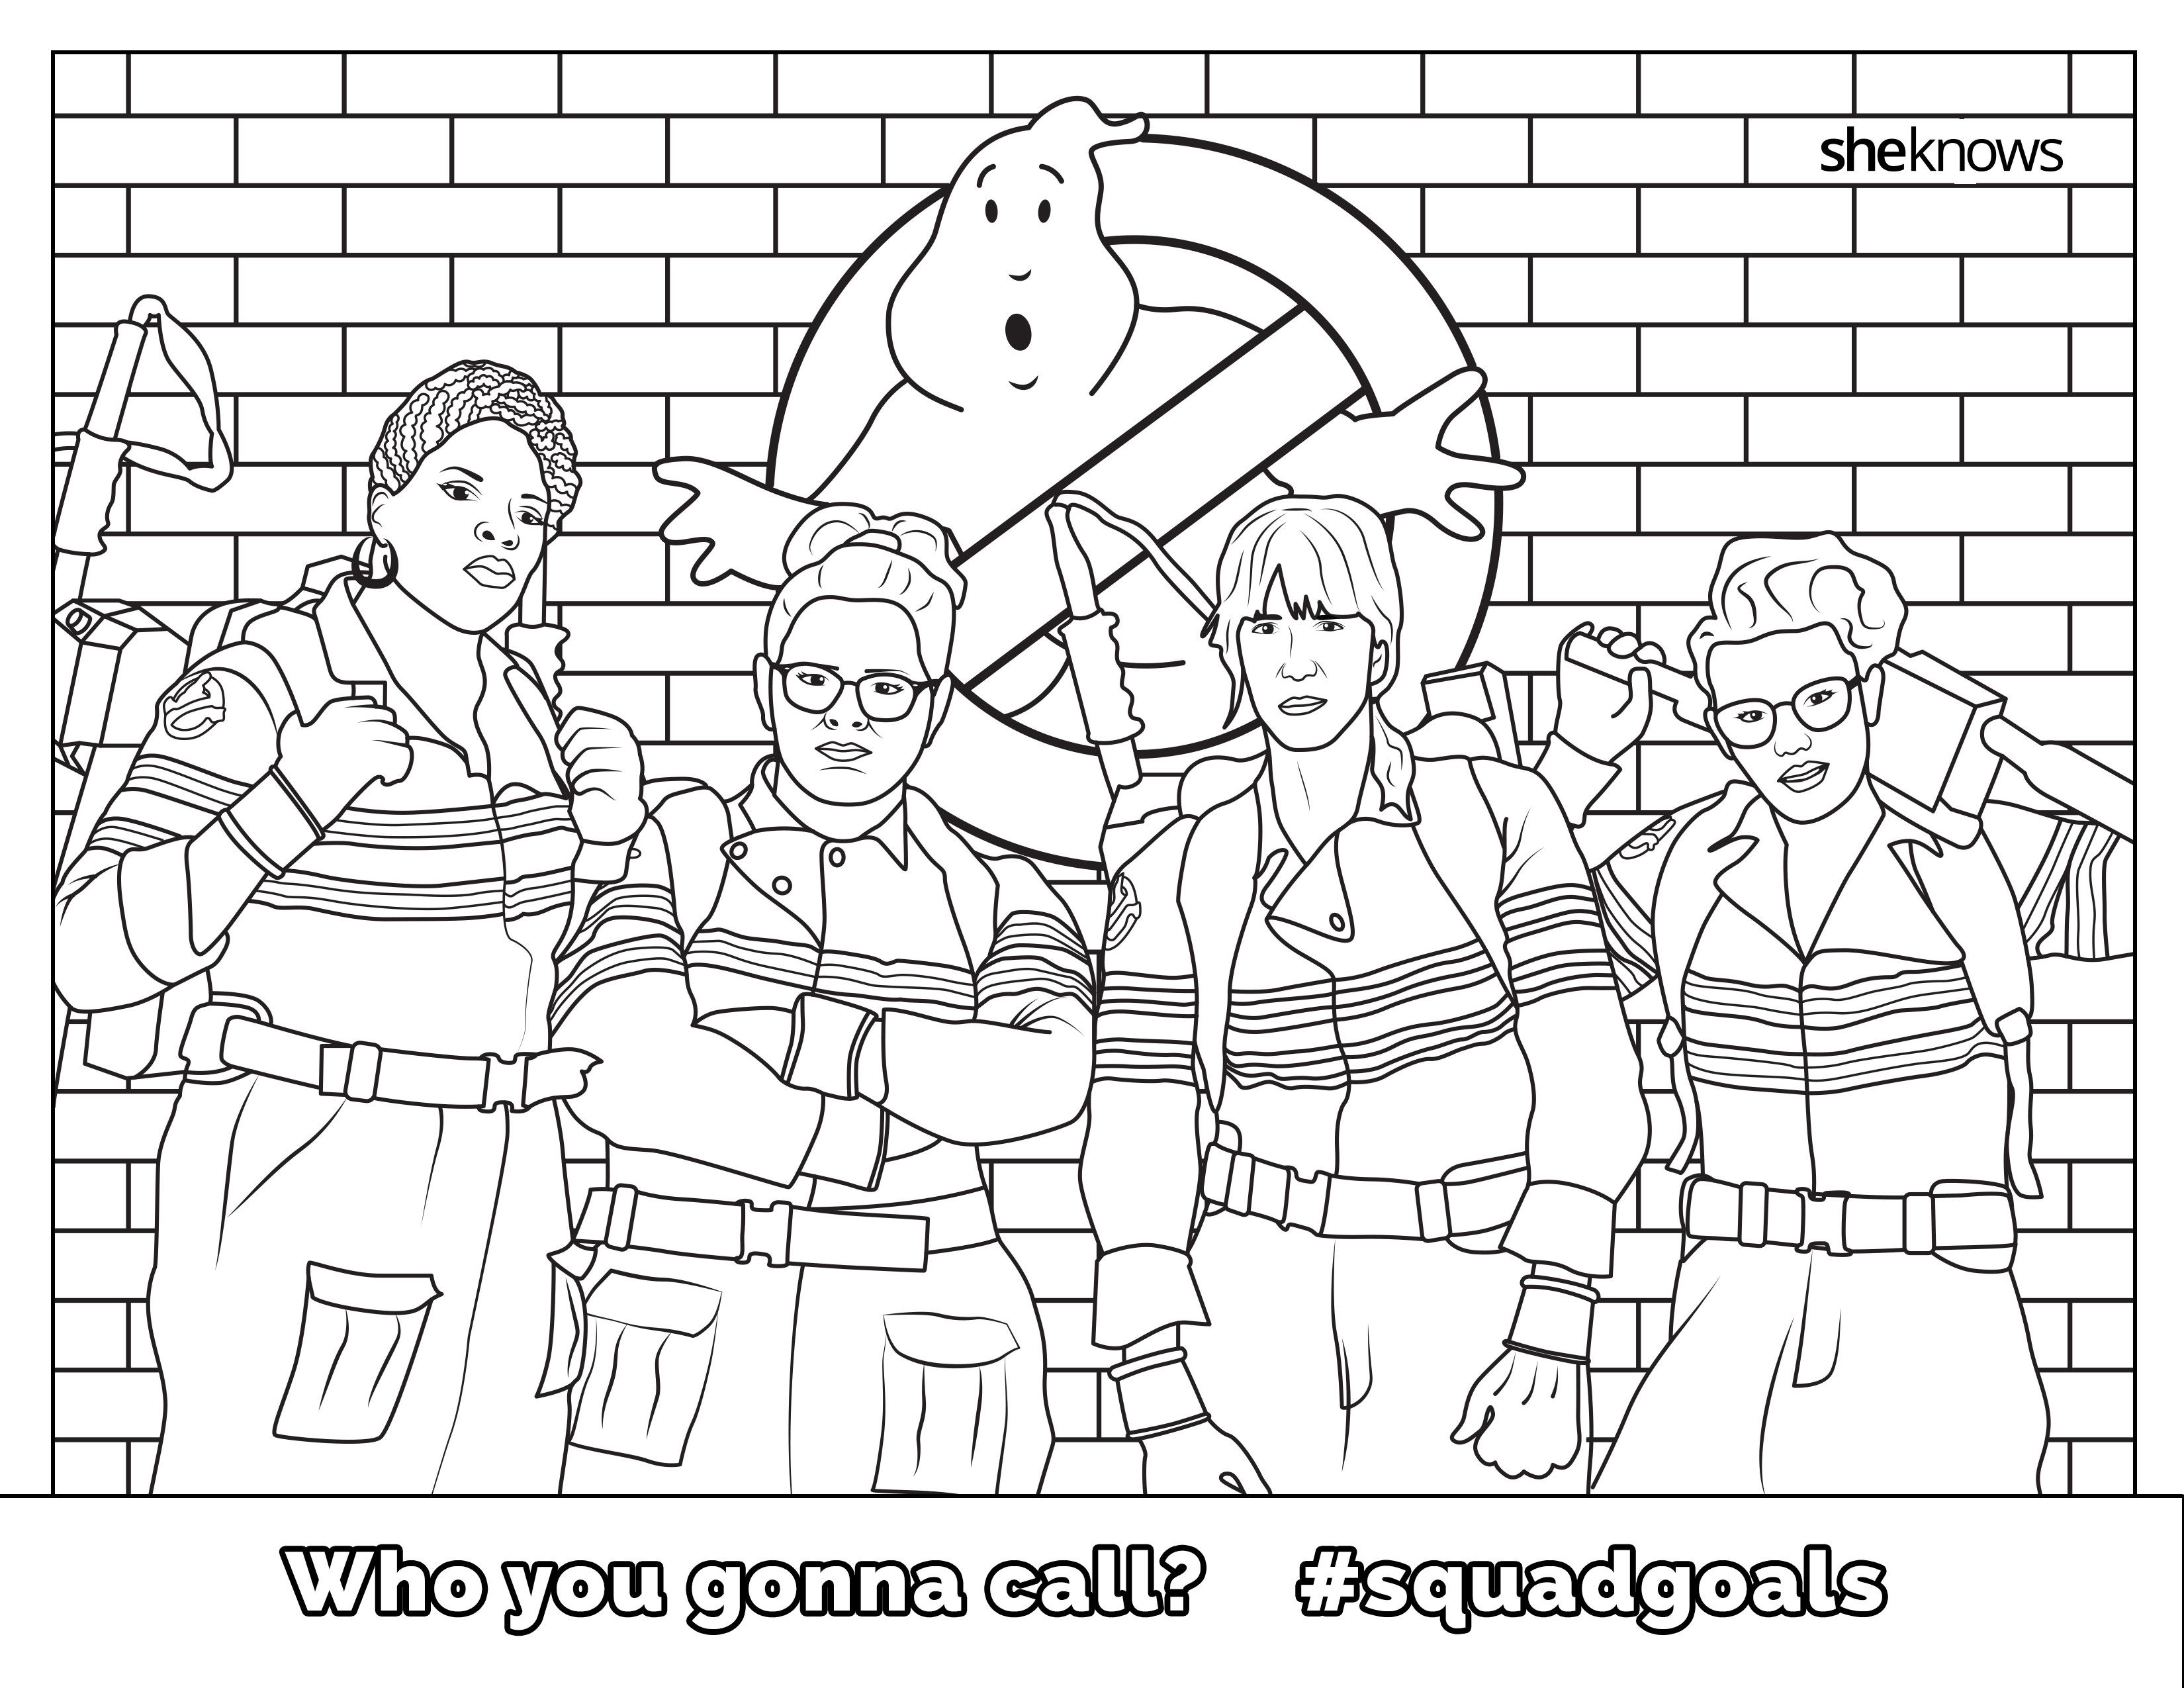 The Ultimate Squadgoals Coloring Book Print It Color It Live It Coloring Pages Coloring Books Coloring Pages To Print